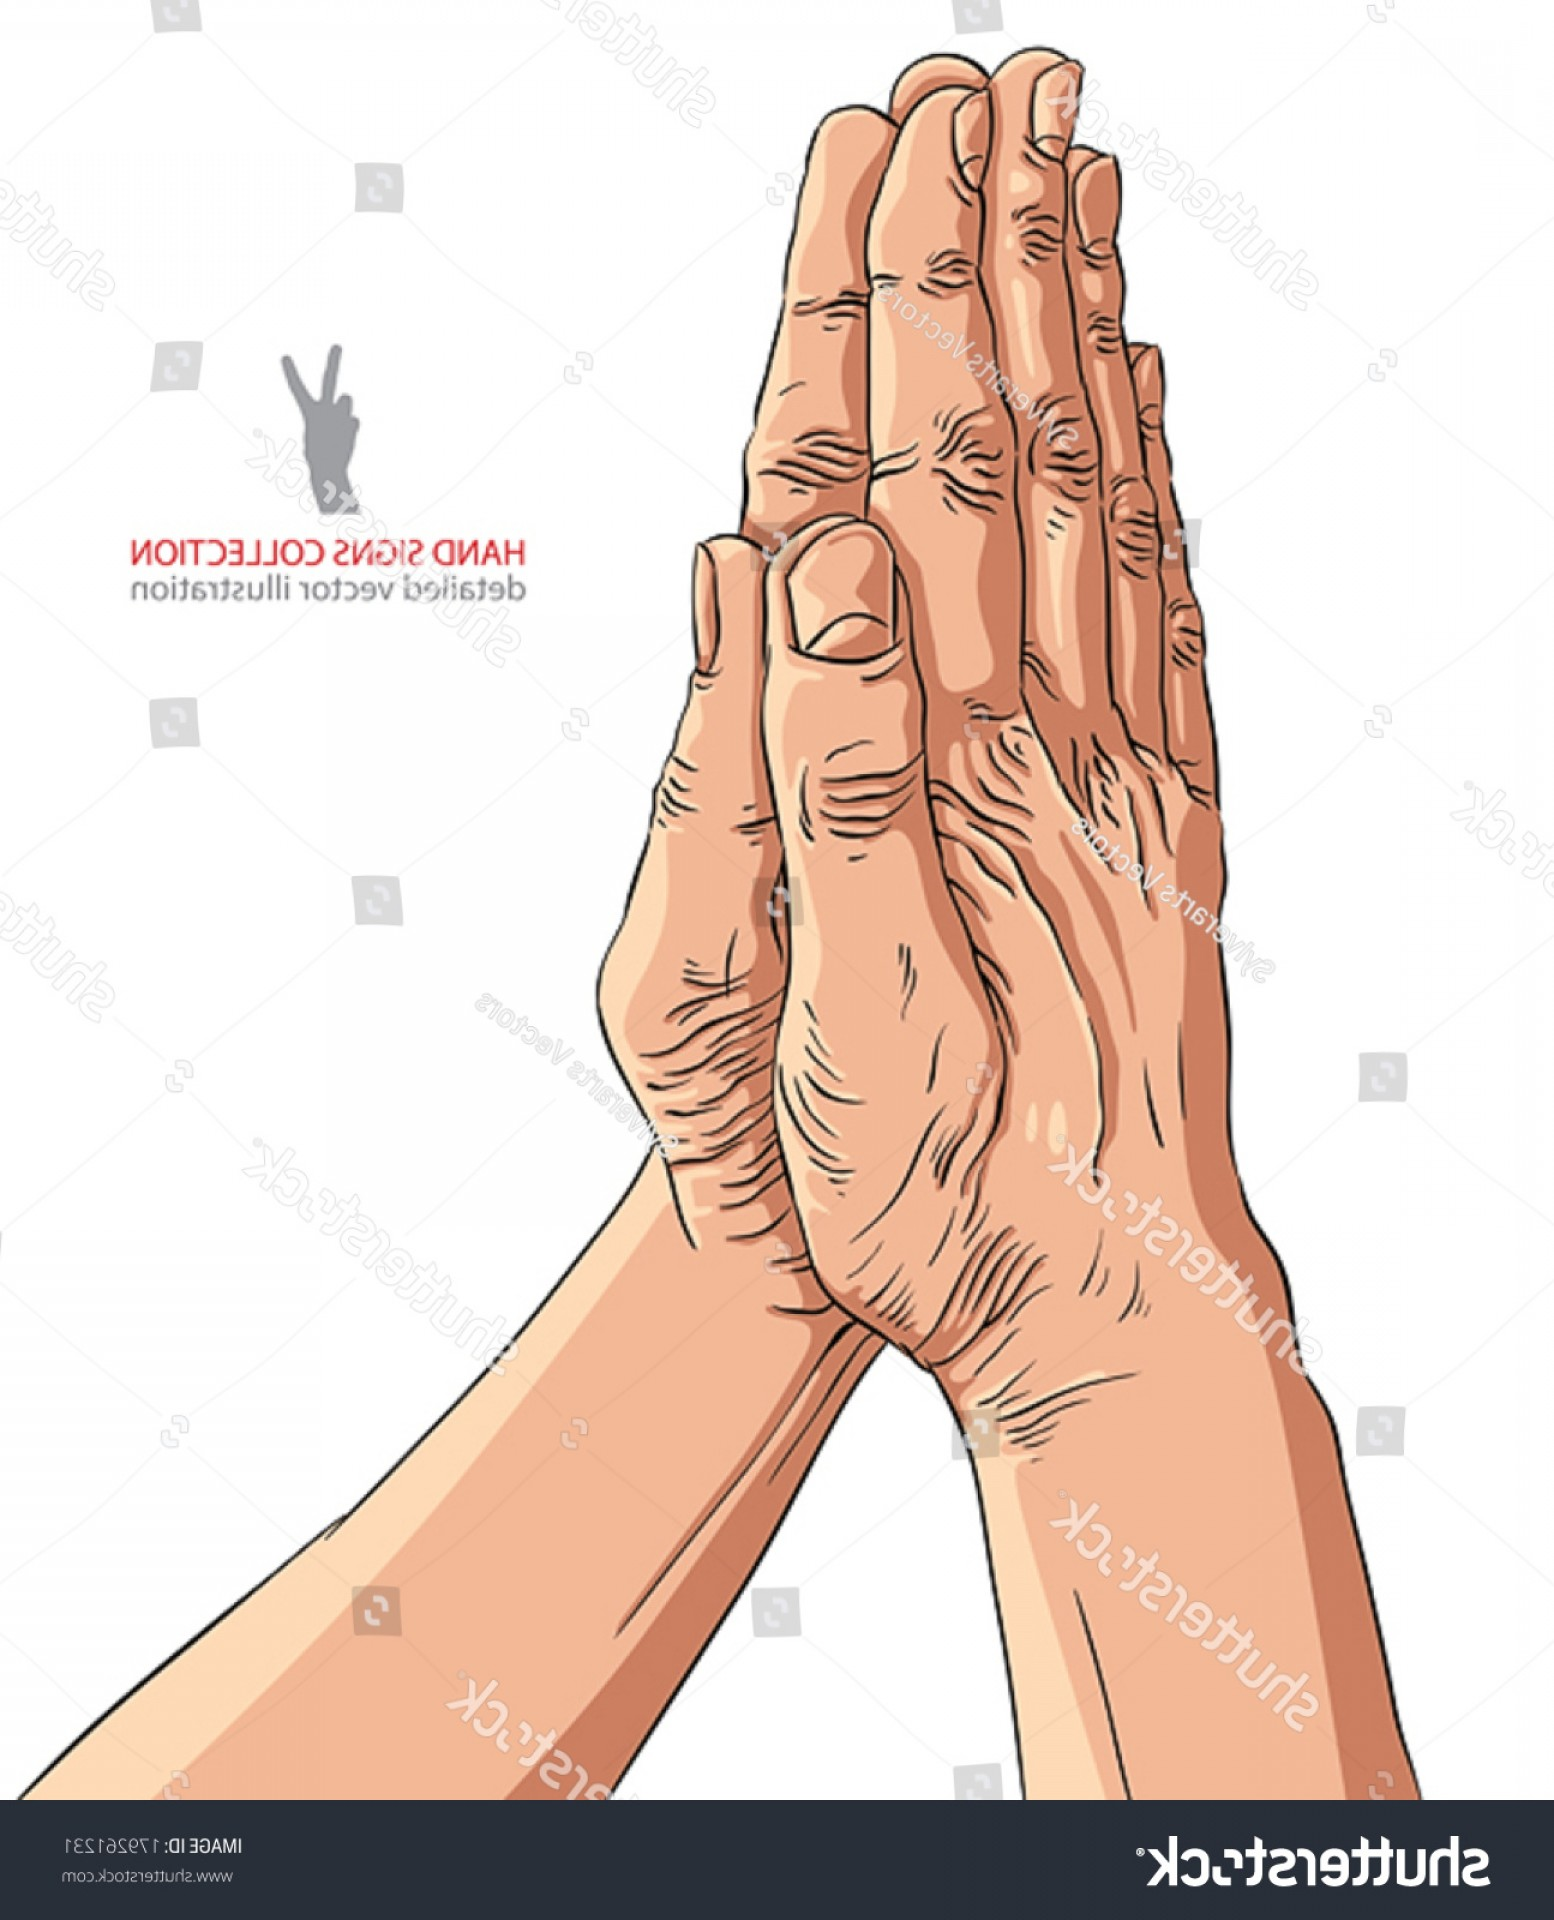 Praying Hands Vectors Shutterstock: Praying Hands Detailed Vector Illustration